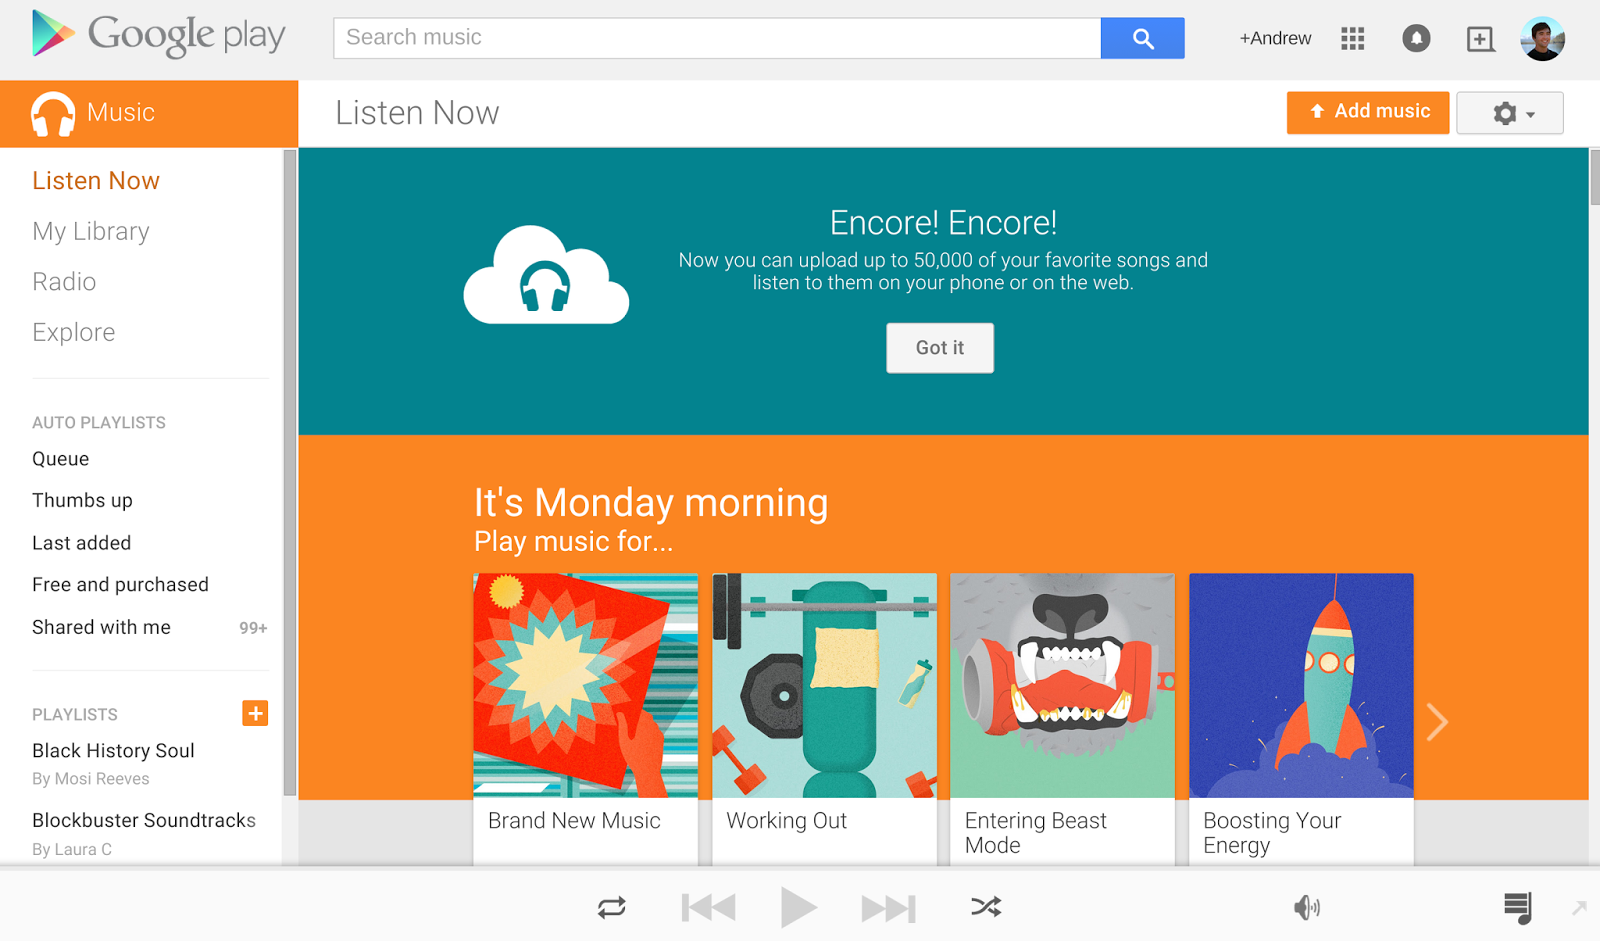 Official Android Blog: Store your music online and listen